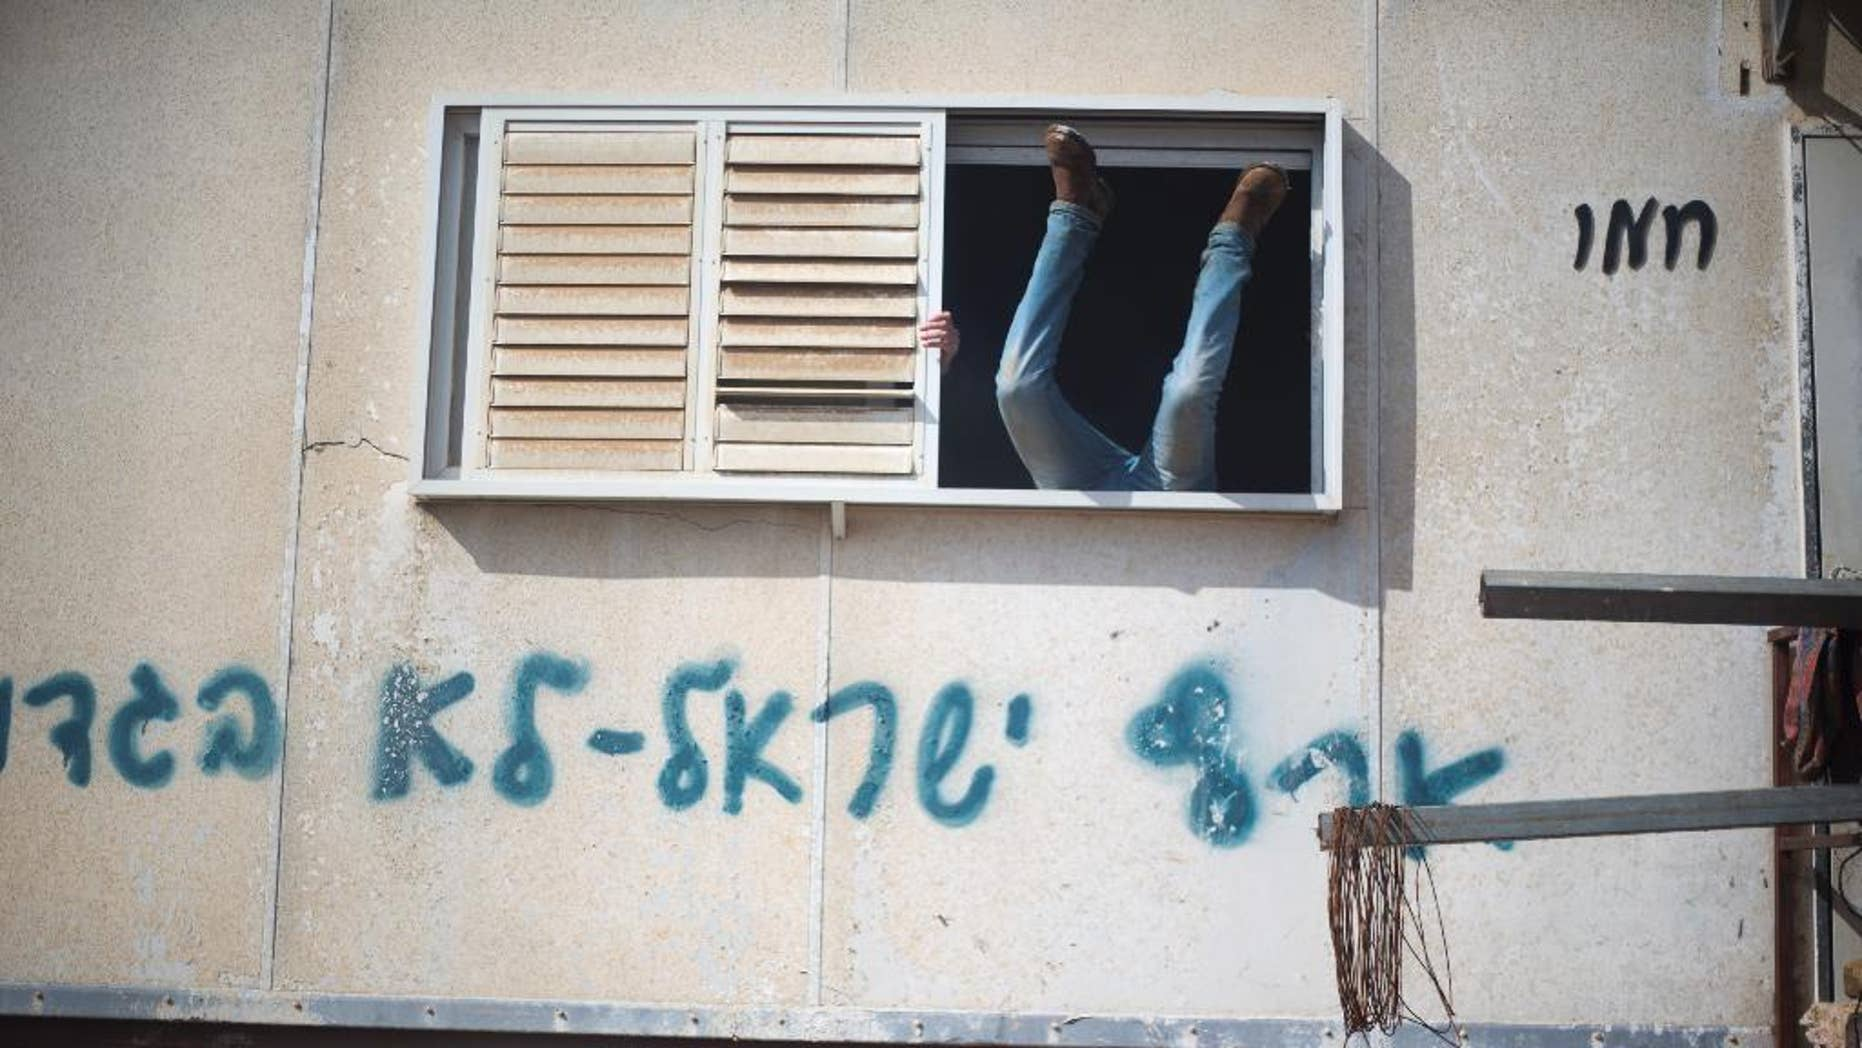 """A settler jumps into a trailer in Amona outpost in the West Bank, Wednesday, Feb. 1, 2017. Israeli forces have begun evacuating a controversial settlement  Amona, which is the largest of about 100 unauthorized outposts erected in the West Bank without permission but generally tolerated by the Israeli government. The writing reads: """"Eretz Israel we did not  betray """". (AP Photo/Ariel Schalit)"""